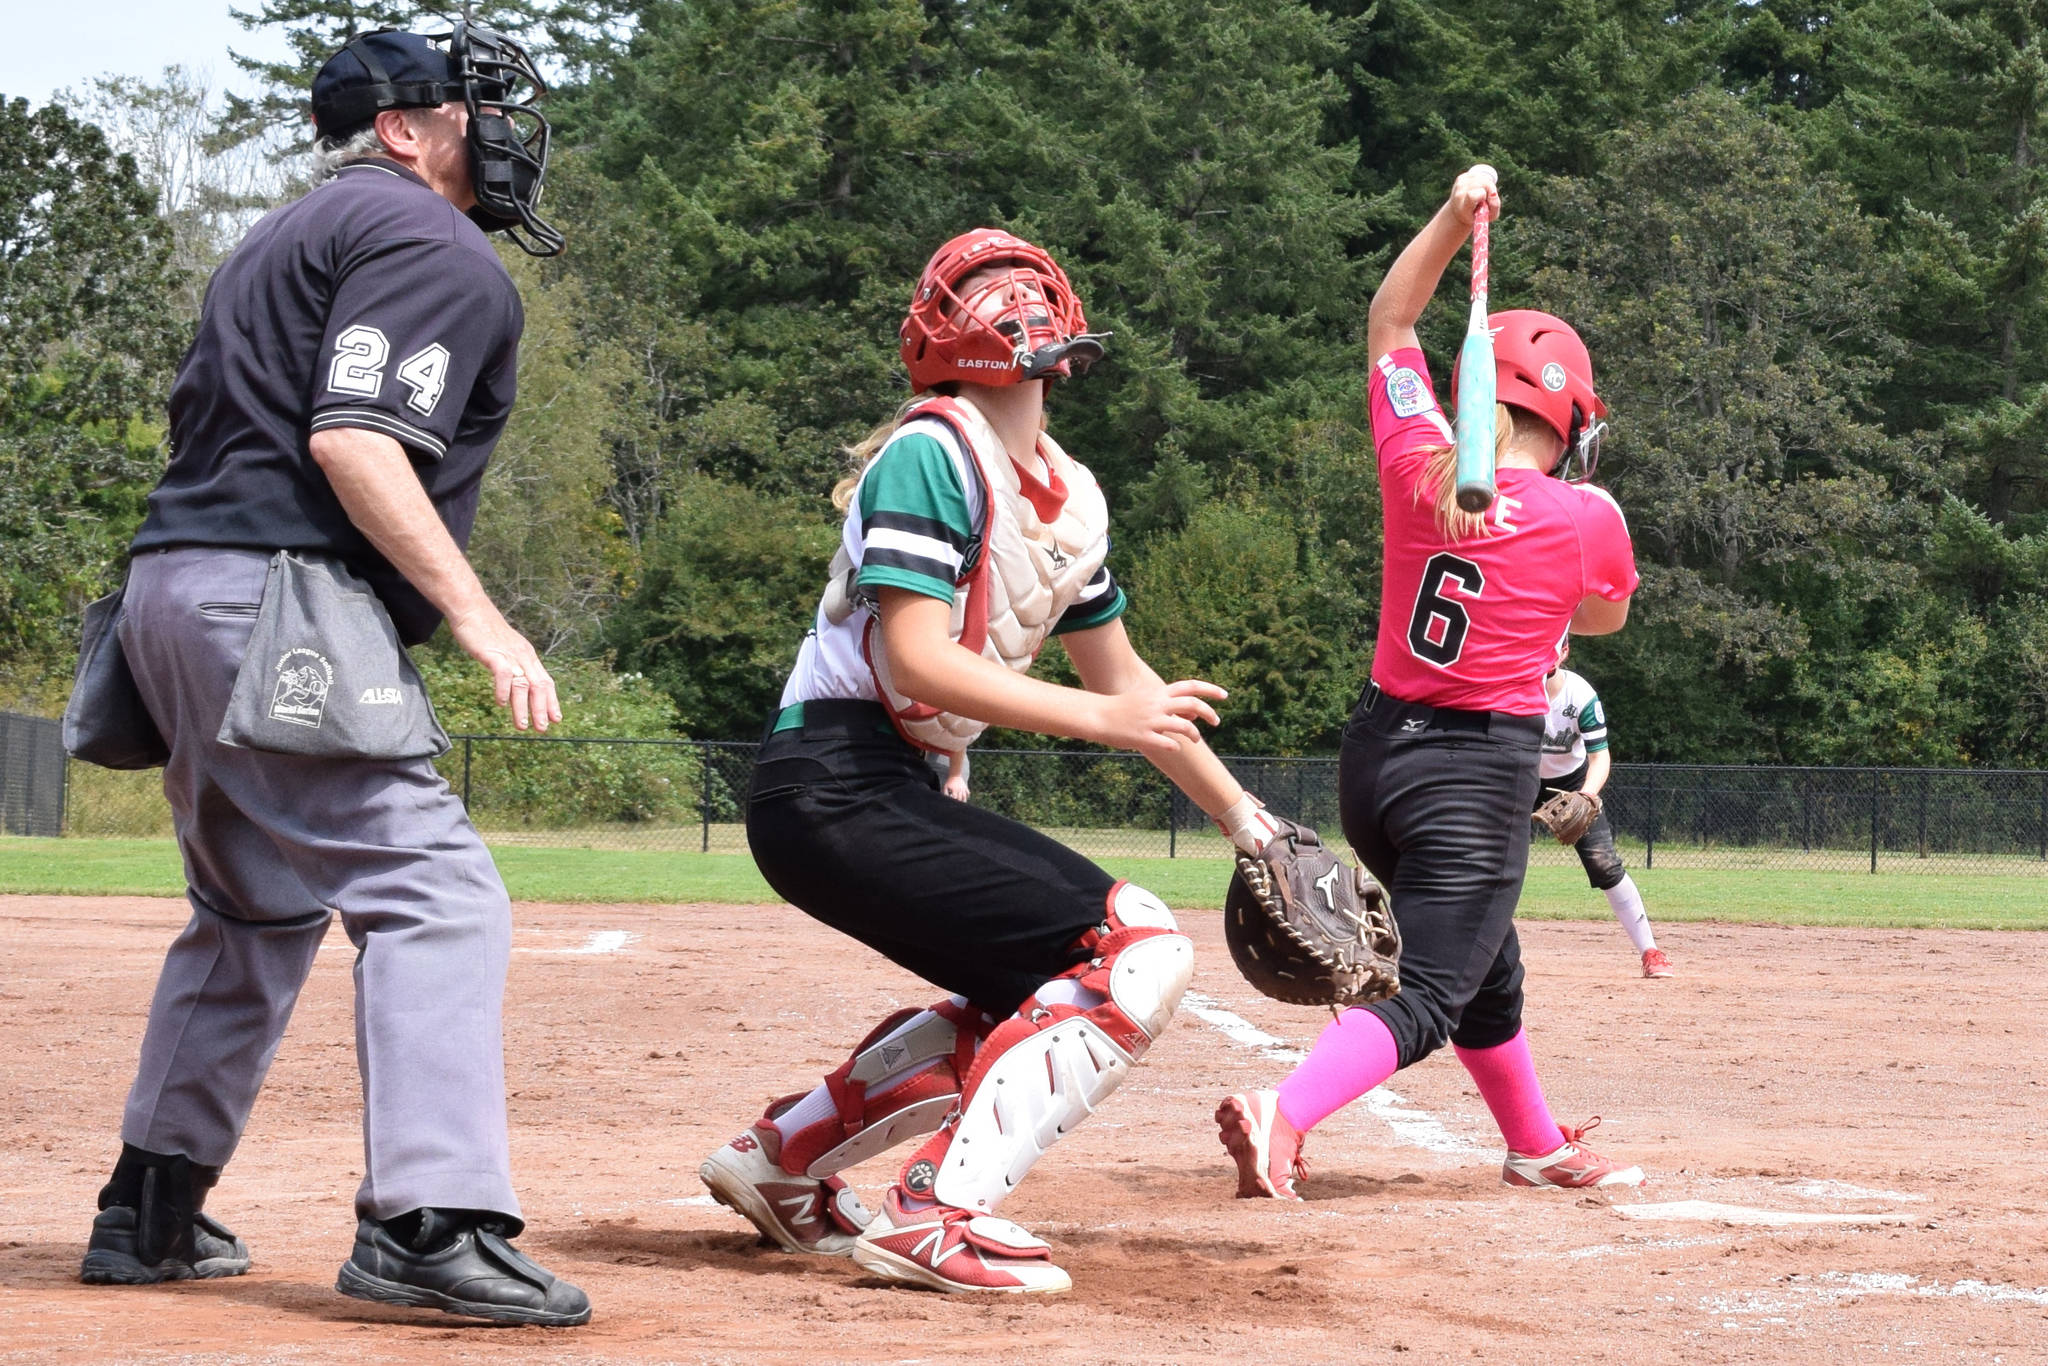 Layritz Little League catcher Zoe Willington searches for a pop-up foul ball from Hampton Little League batter Carissa Dye (#6) at the 2019 Little League Softball Canadian Championships in Saanich on Thursday. Layritz won Thursday's matchup 6-1 but fell in Sunday's championship 2-1. (Kevin Menz/News Staff)